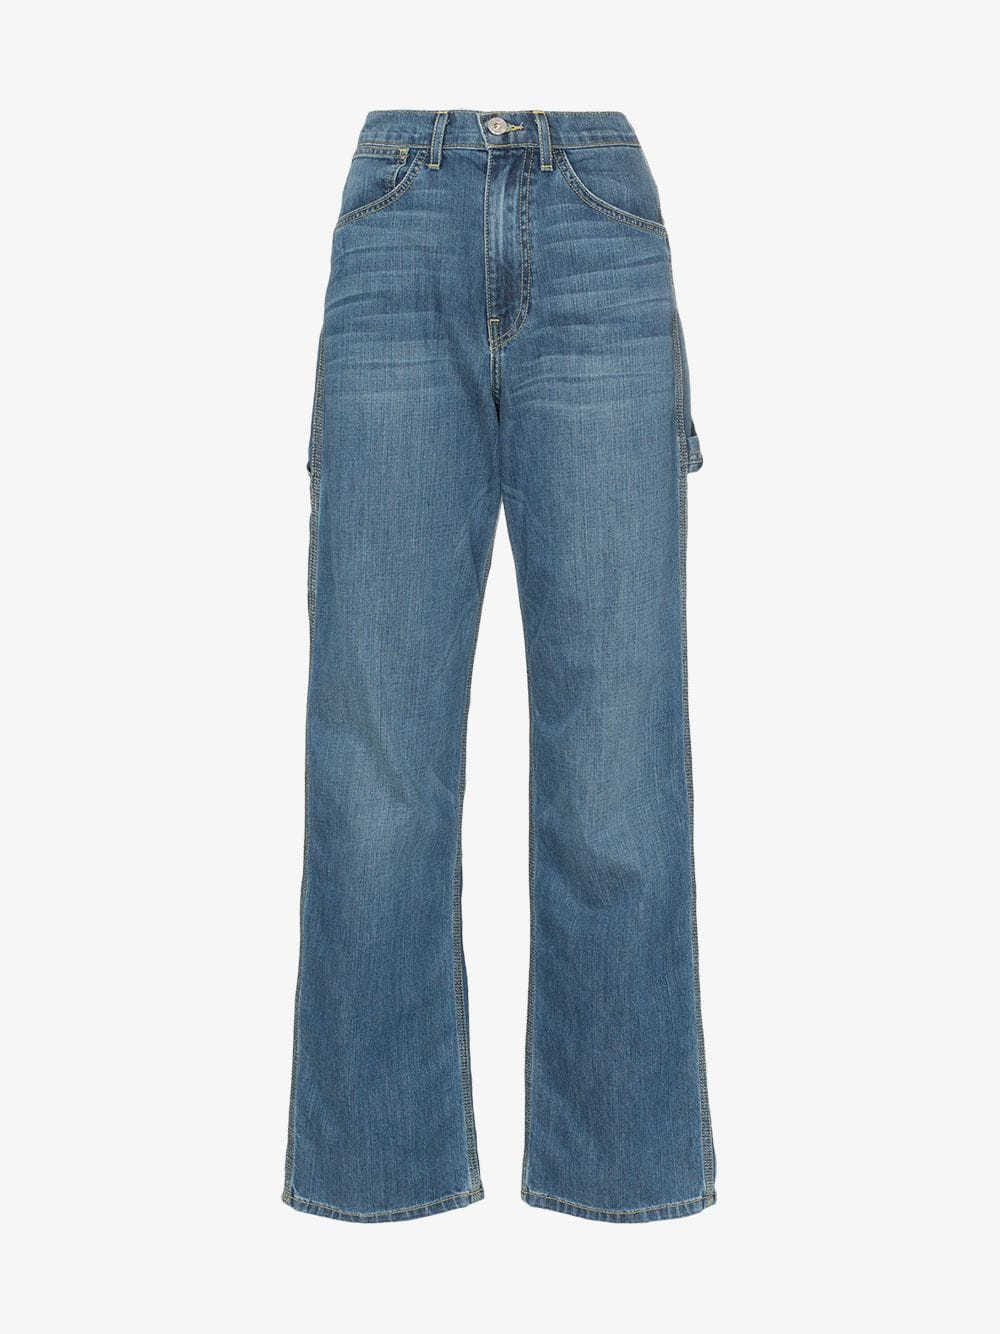 Eve Denim Carolyn high-waisted loose fit jeans in blue